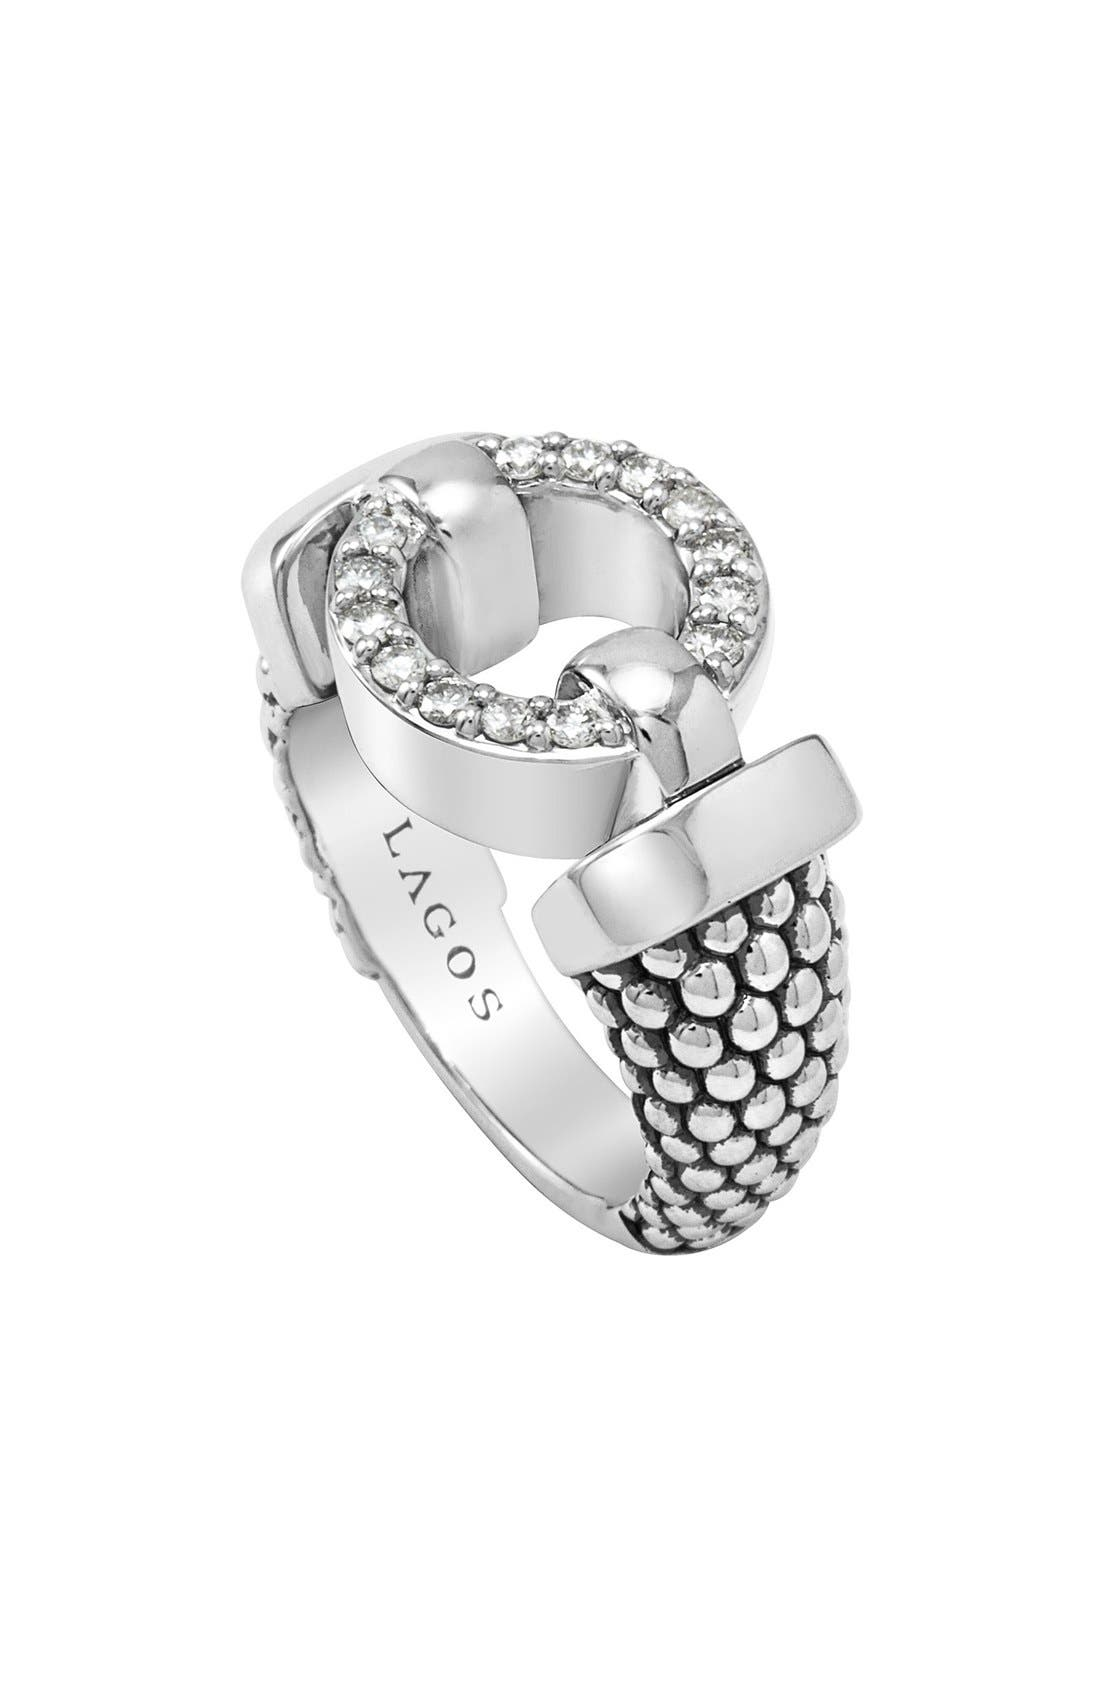 LAGOS 'Enso - Circle Game' Diamond Caviar Ring